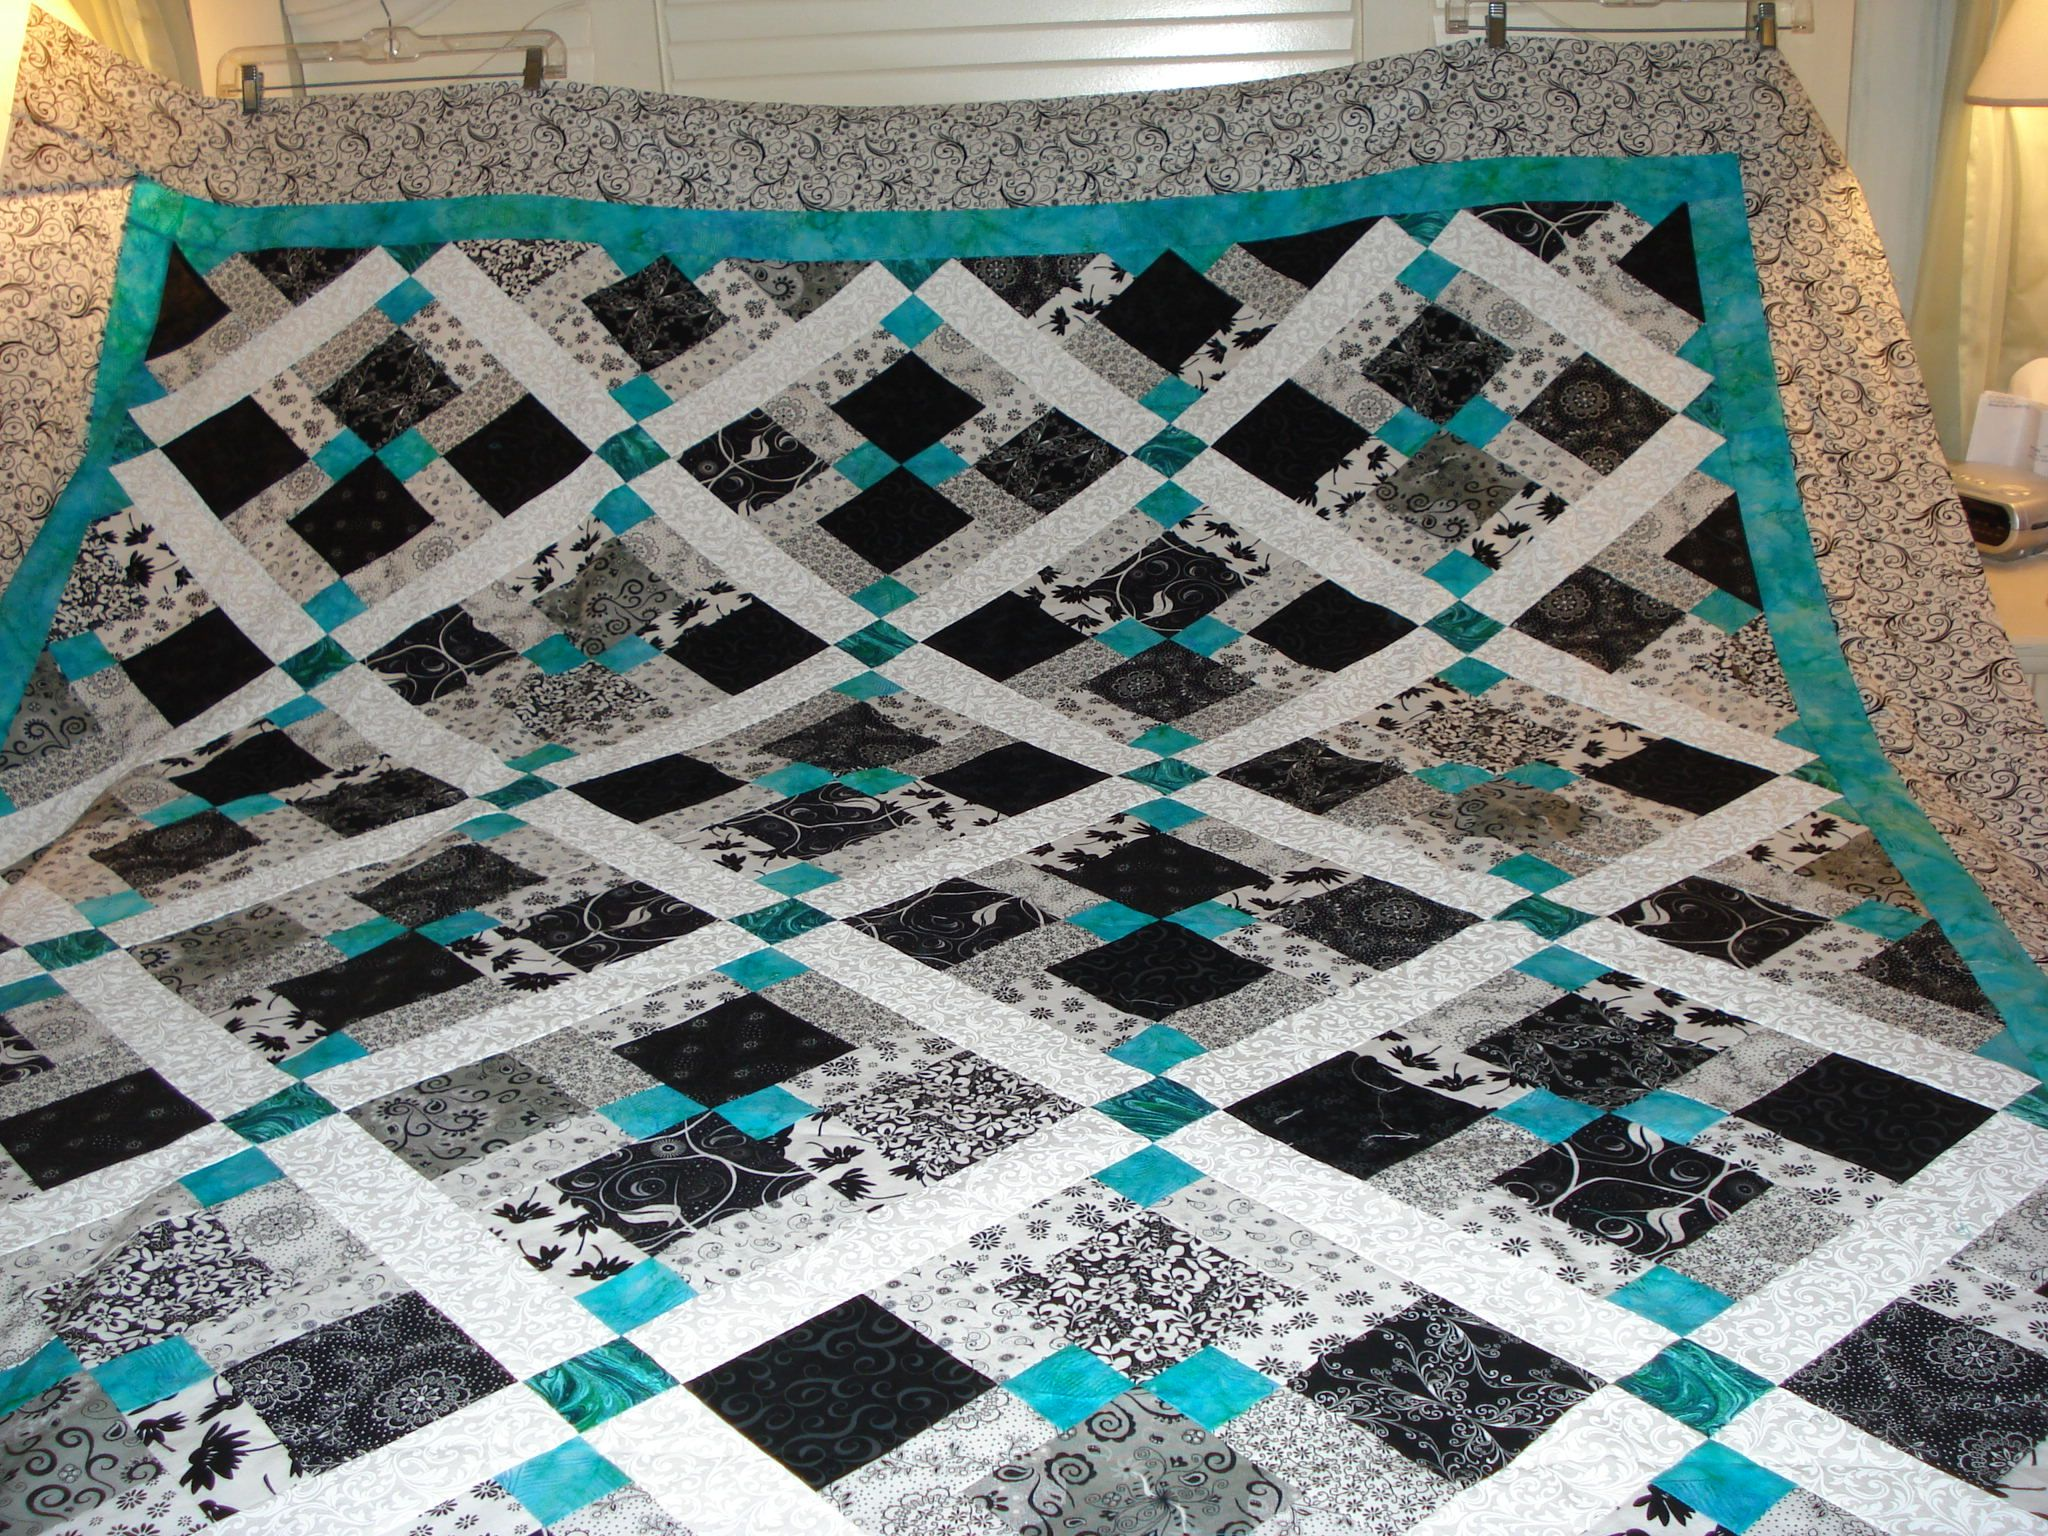 Question son Disappearing 9 patch | Patchwork | Pinterest ... : tossed nine patch quilt pattern - Adamdwight.com